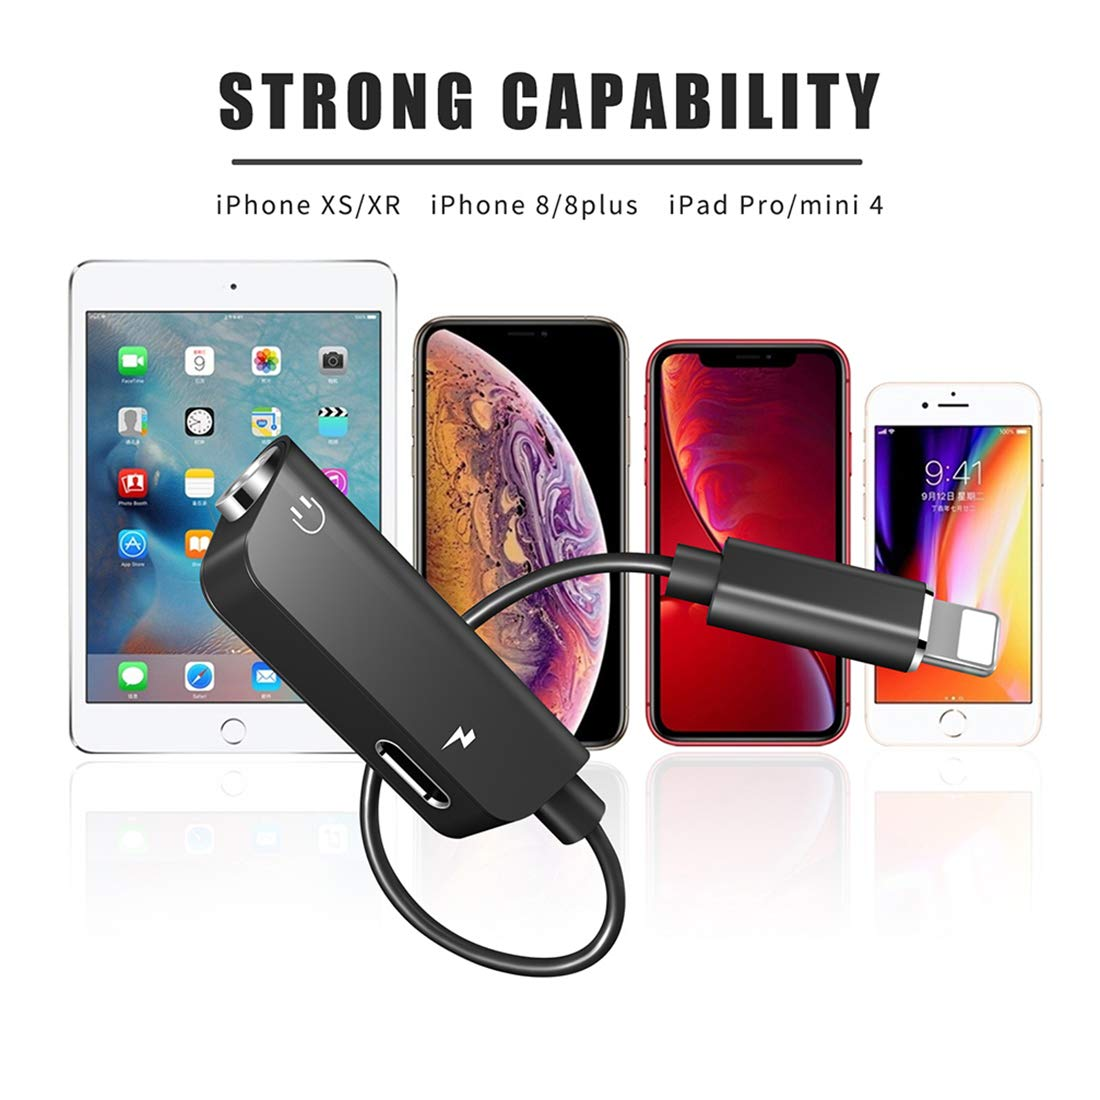 Adapter for iPhone 7 Headphone Adaptor to 3.5mm Converter Earphone for iPhone X//Xs//XS max//8//8 Plus 7//7 Plus Headphone Cable Splitter Audio Jack Headphone Cable Earbud Adapter Support iOS 12 or Later